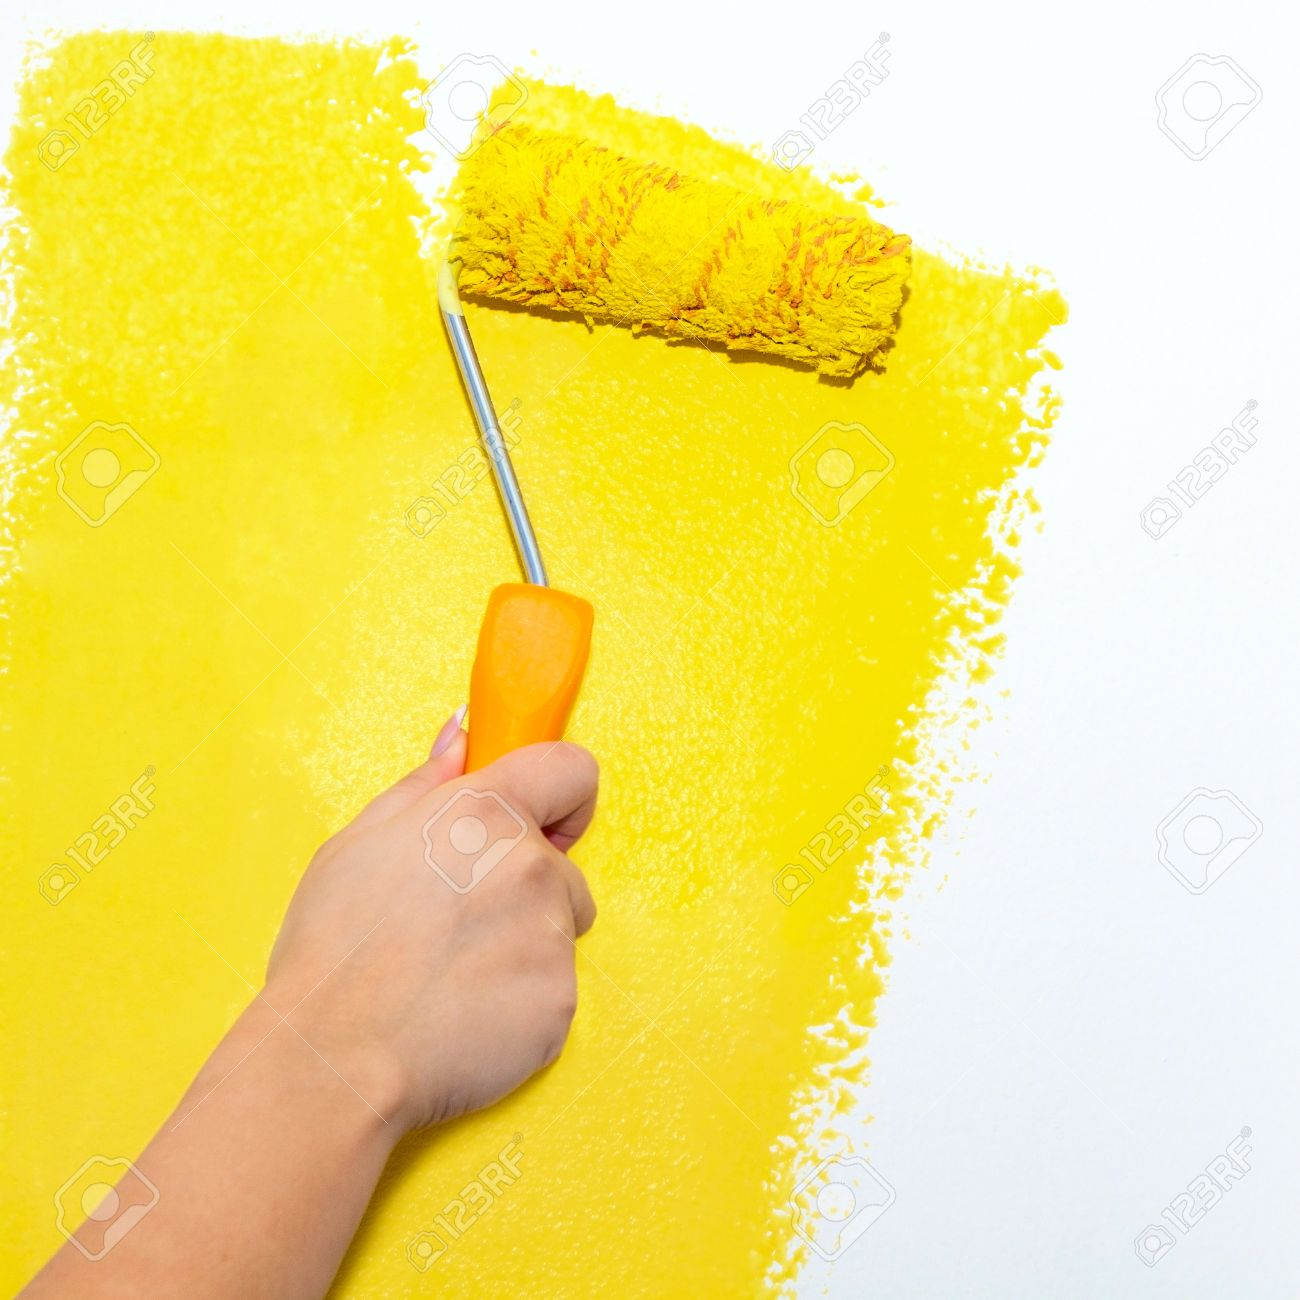 Painting Roller On White Wall With Yellow Paint Stock Photo, Picture ...